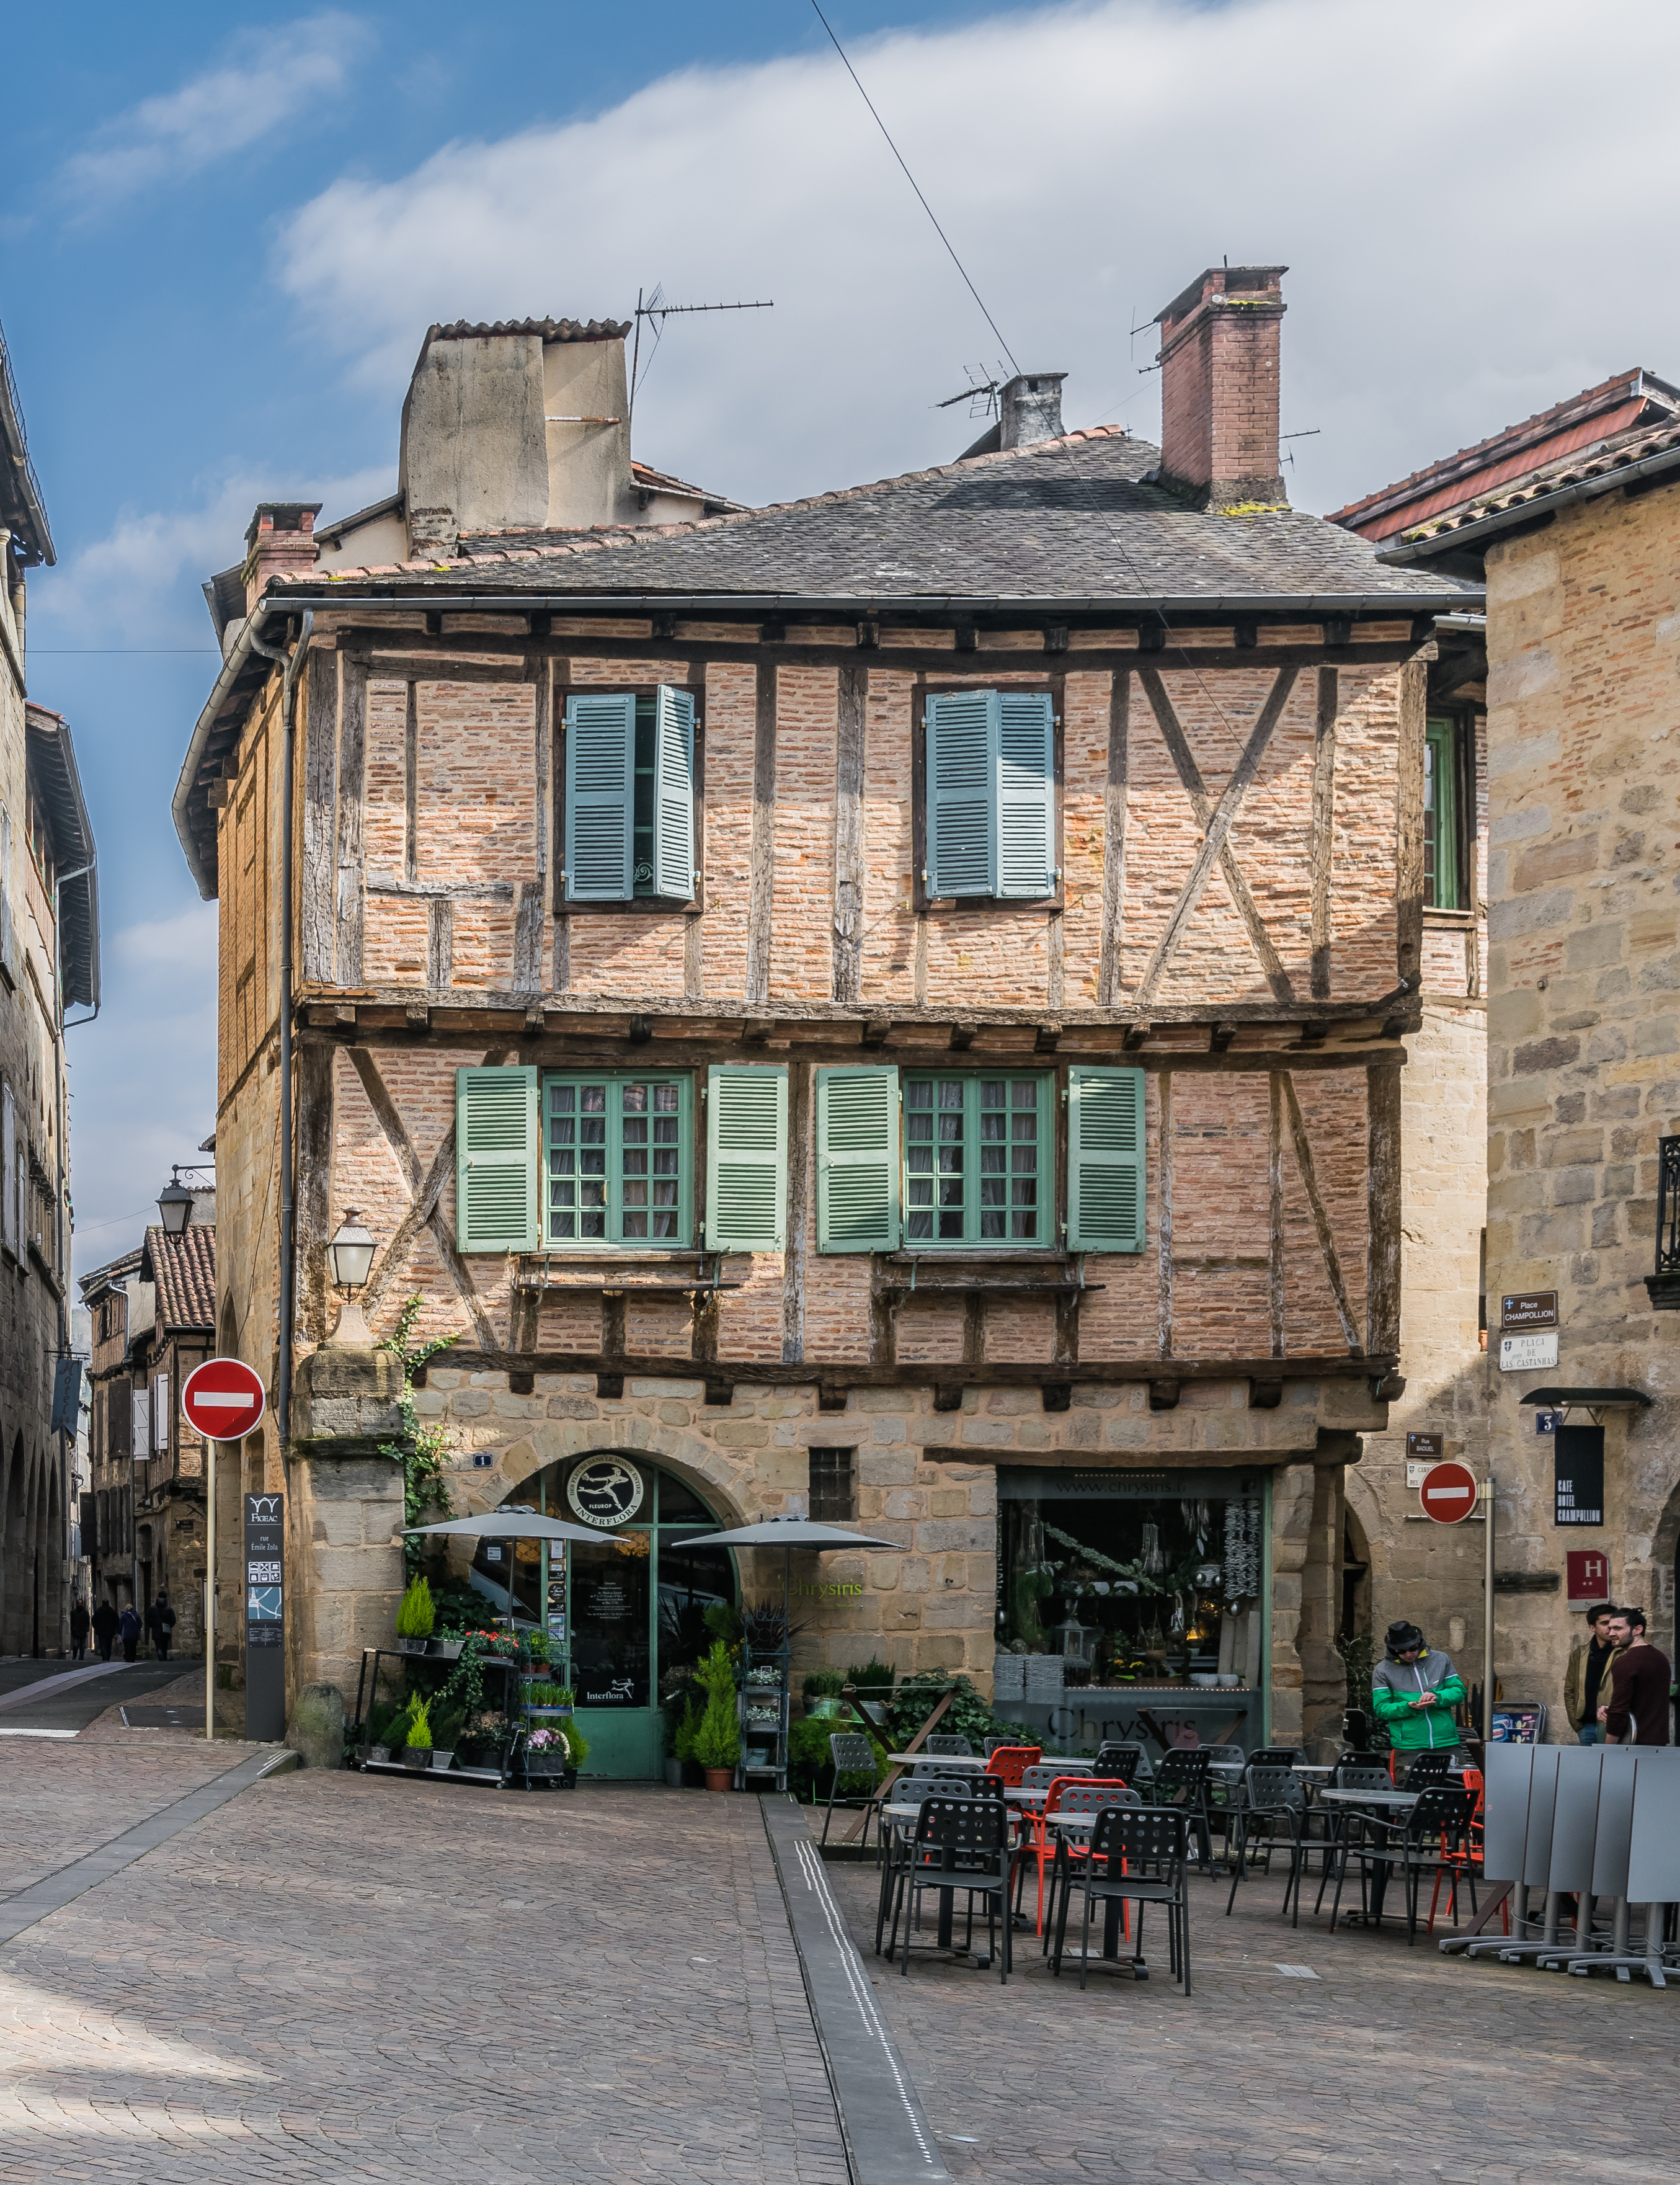 Location Figeac File 2 Place Champollion In Figeac Jpg Wikimedia Commons